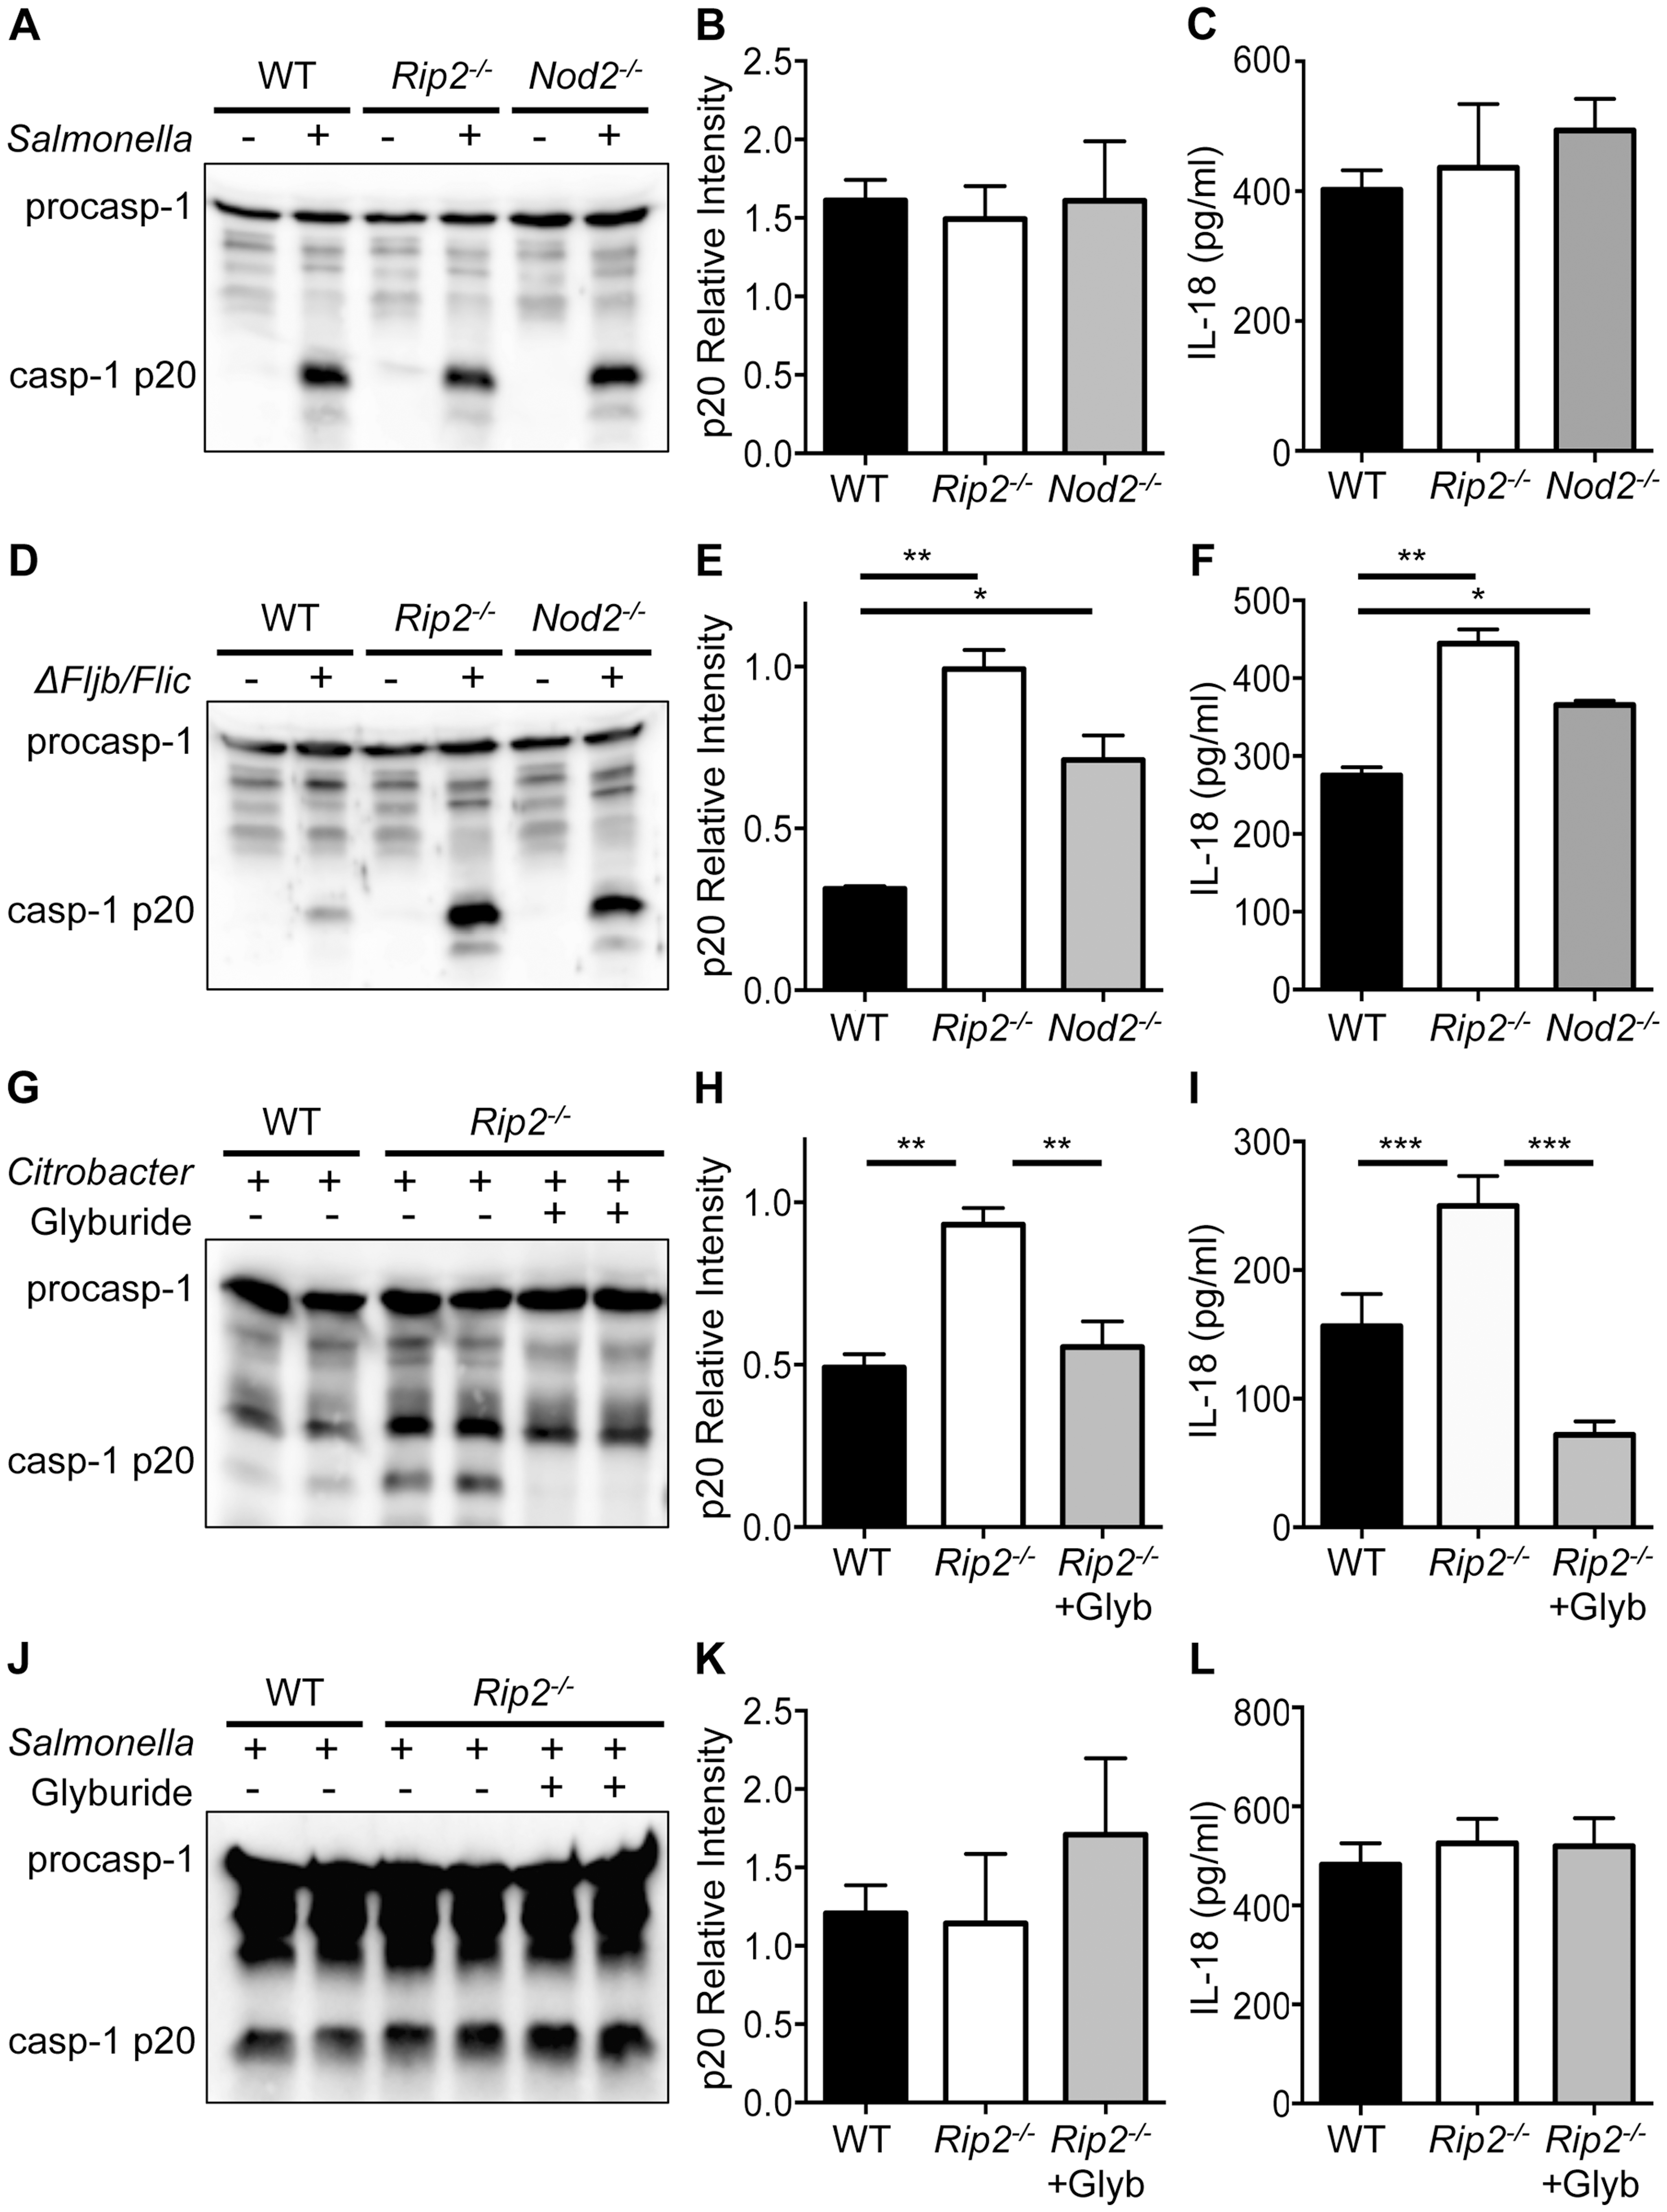 NOD2 and RIP2 specifically regulate NLRP3 inflammasome activation.